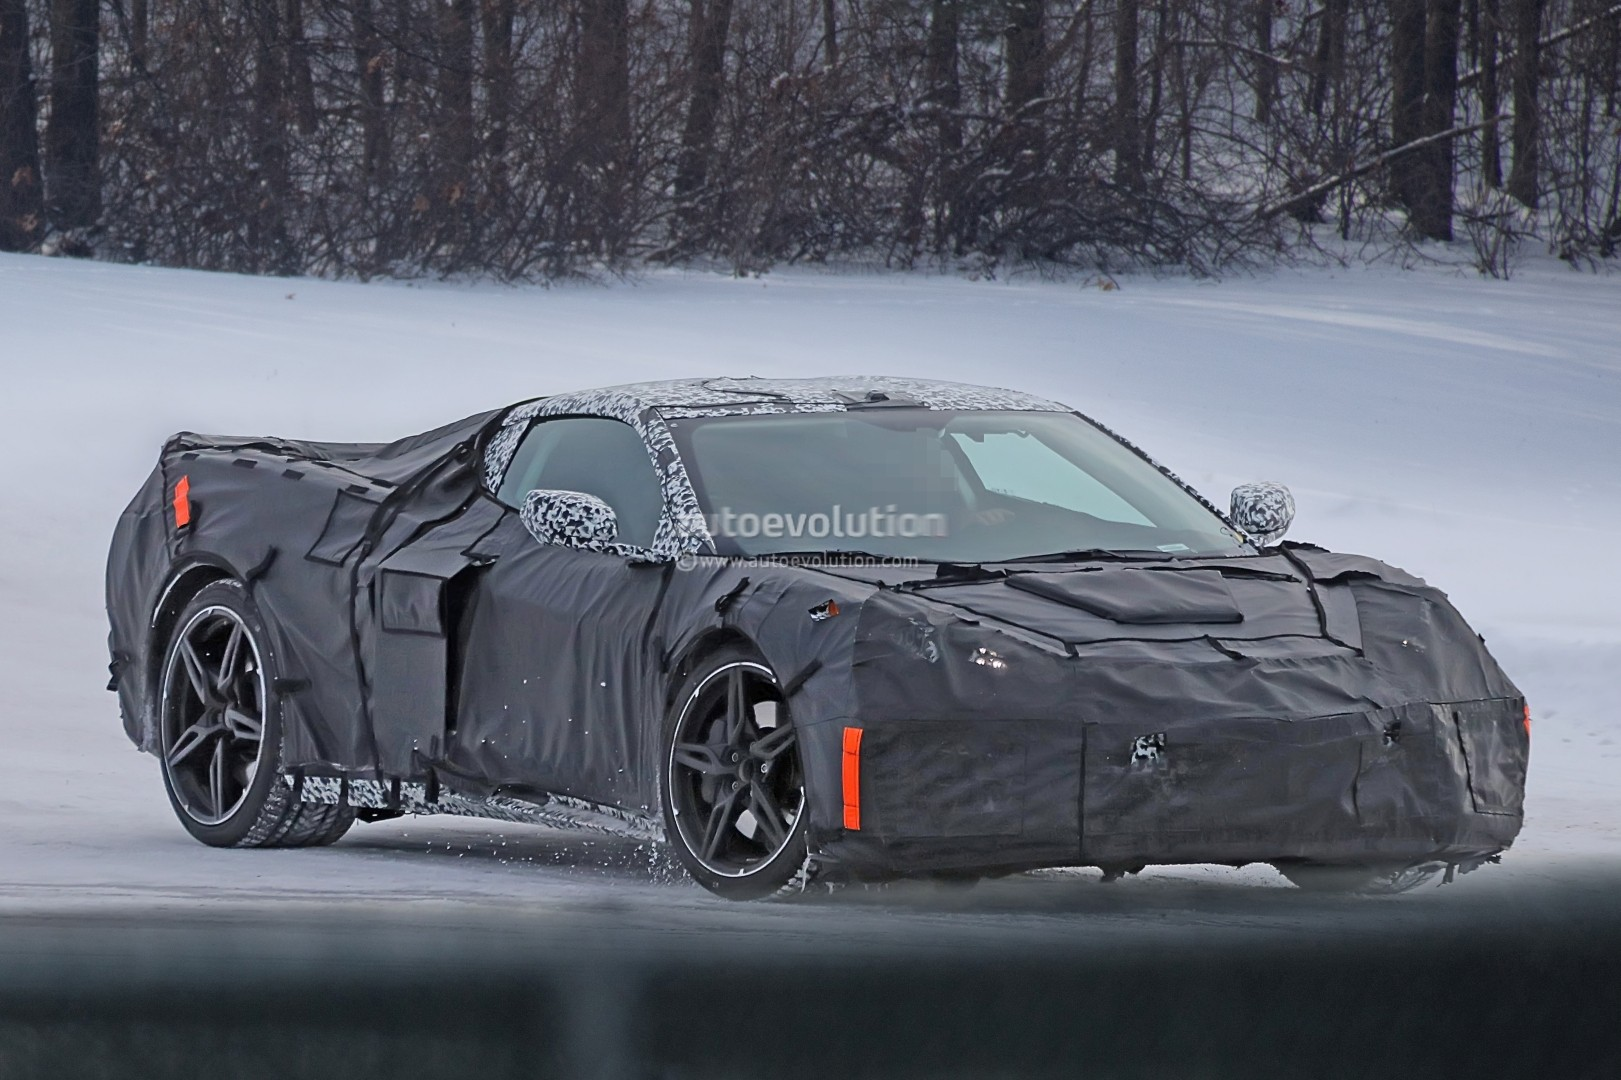 Van Bortel Corvette >> Mid-Engined C8 Chevrolet Corvette Teased at Dealer Meeting - autoevolution